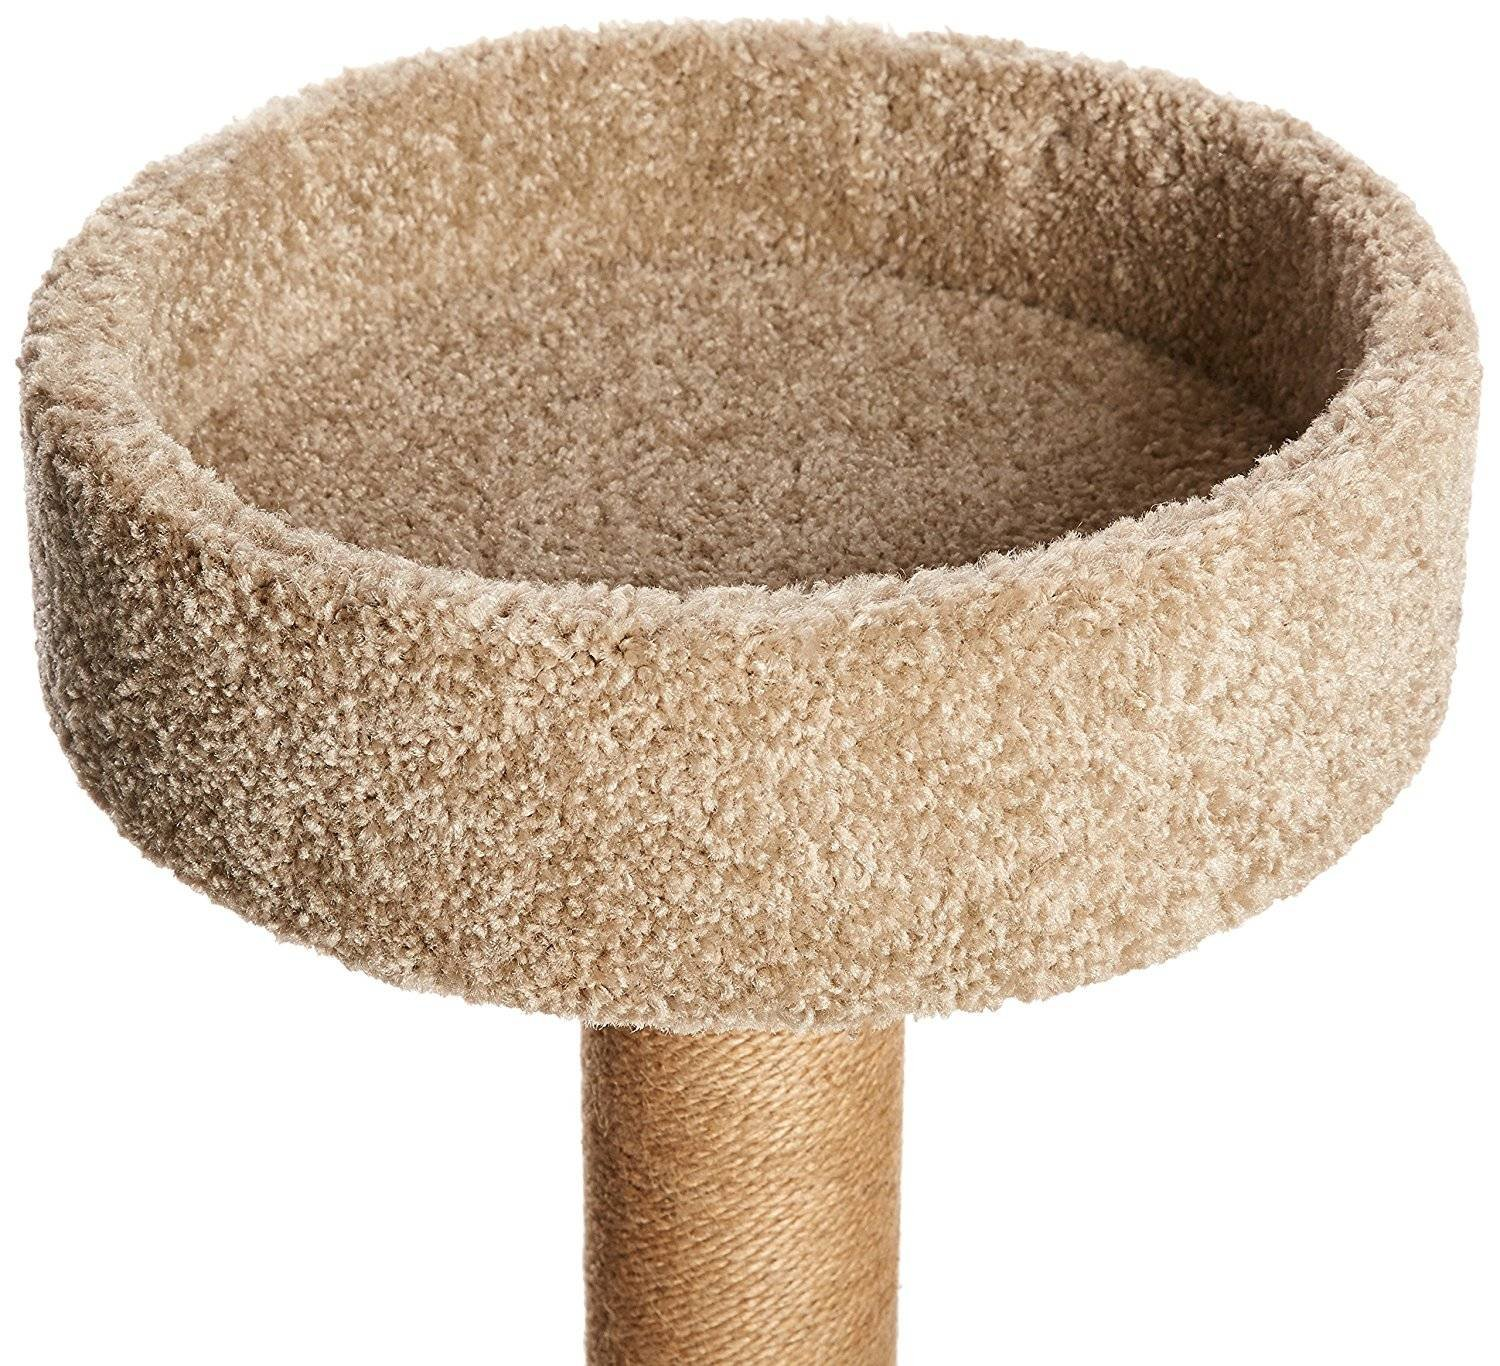 Cat climbing frame cat litter cat tree big cat sisal cat scratching cat cat jumping platform cat environmental toys M by SHUTAO (Image #4)